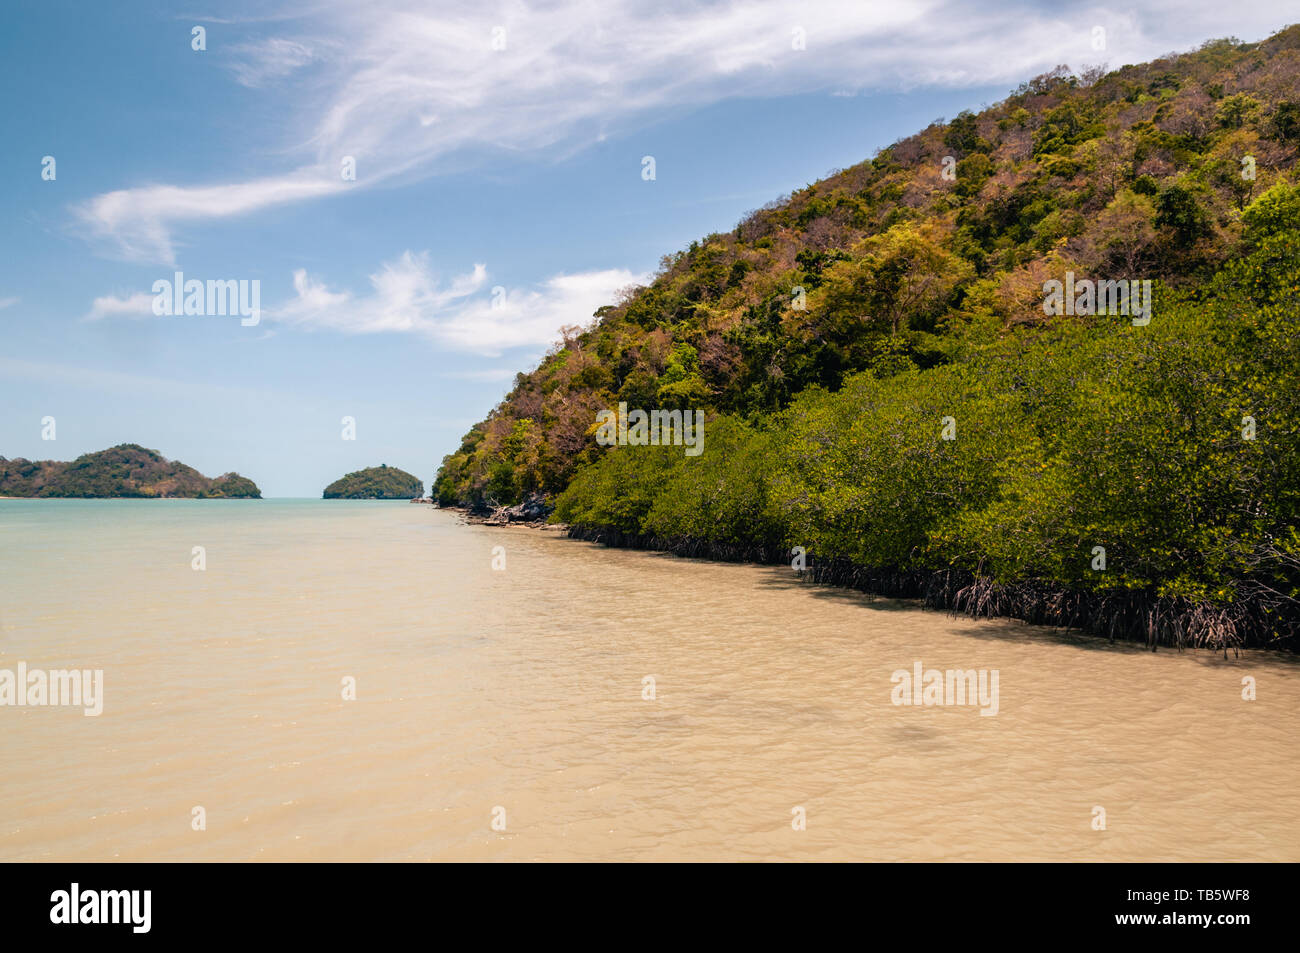 Coastline and mangrove forest in Talet bay at Nakhon Si Thammarat province of Thailand. - Stock Image